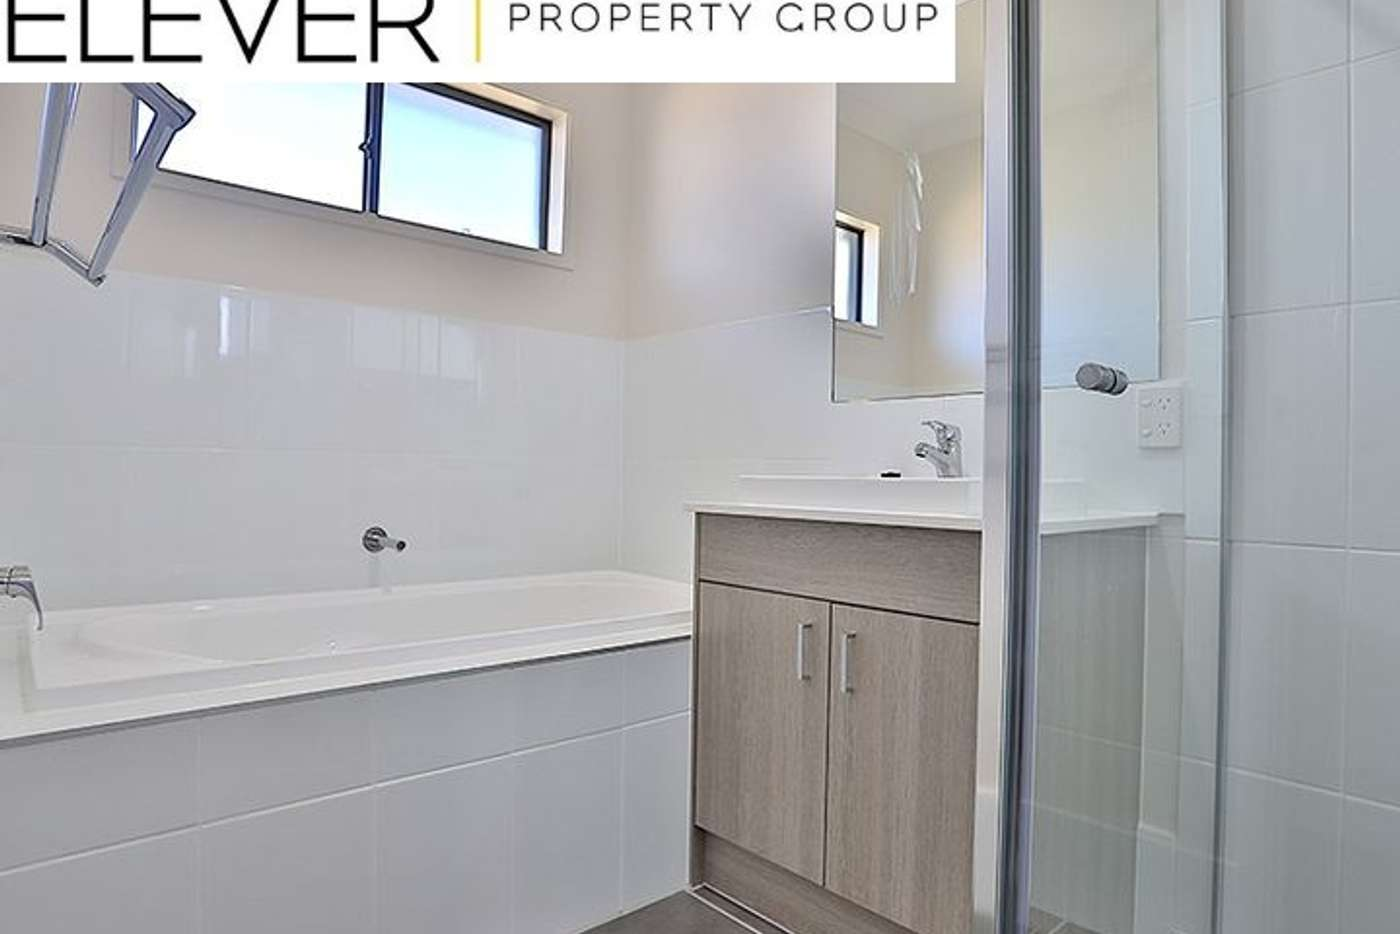 Seventh view of Homely house listing, 12 Buccaneer Street, Newport QLD 4020